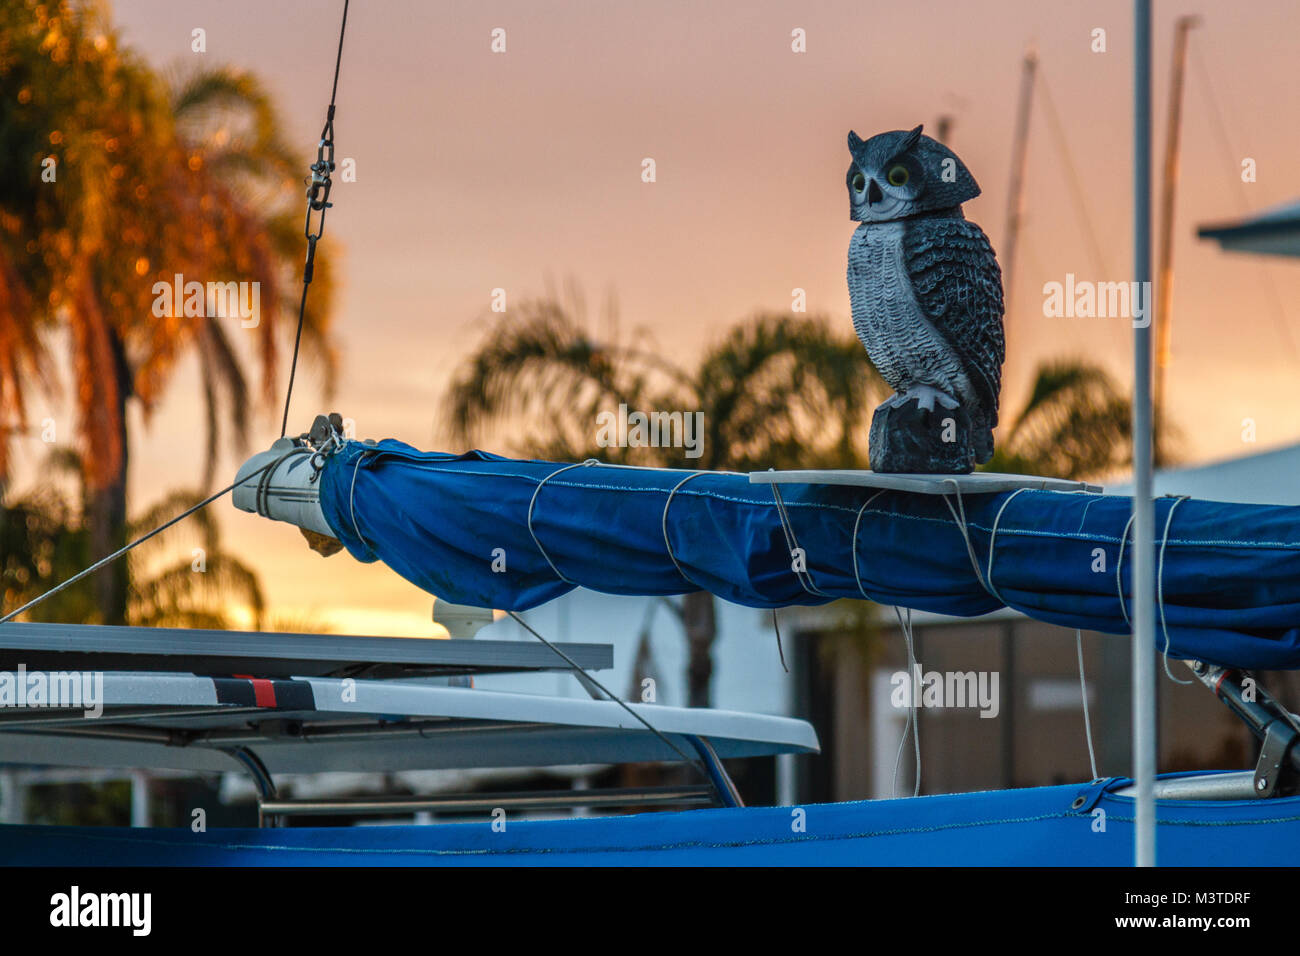 Owl deterrent at a marina at sunset, Queensland, Australia. Yachting, boating. - Stock Image